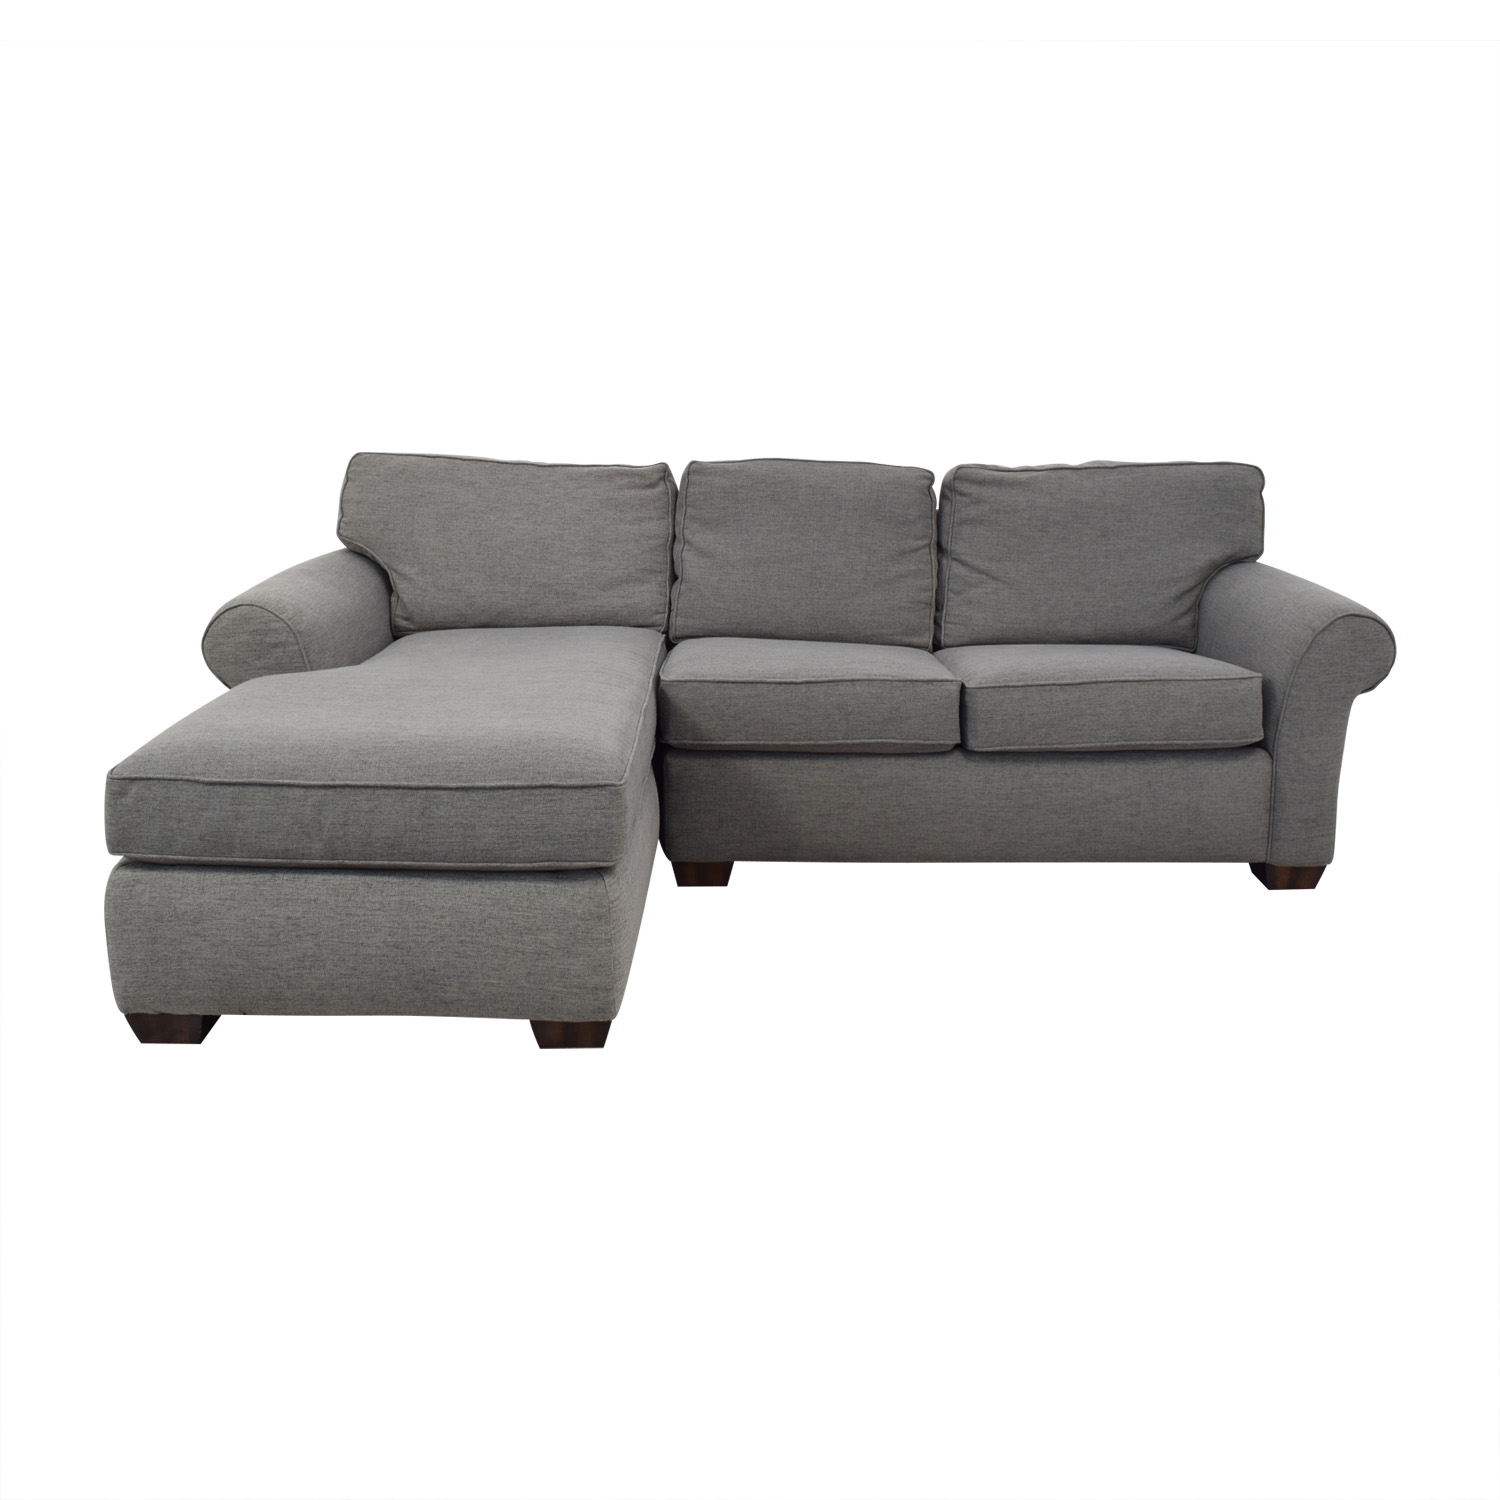 68% OFF - Flexsteel Flexsteel Grey Sectional Sofa with Chaise / Sofas